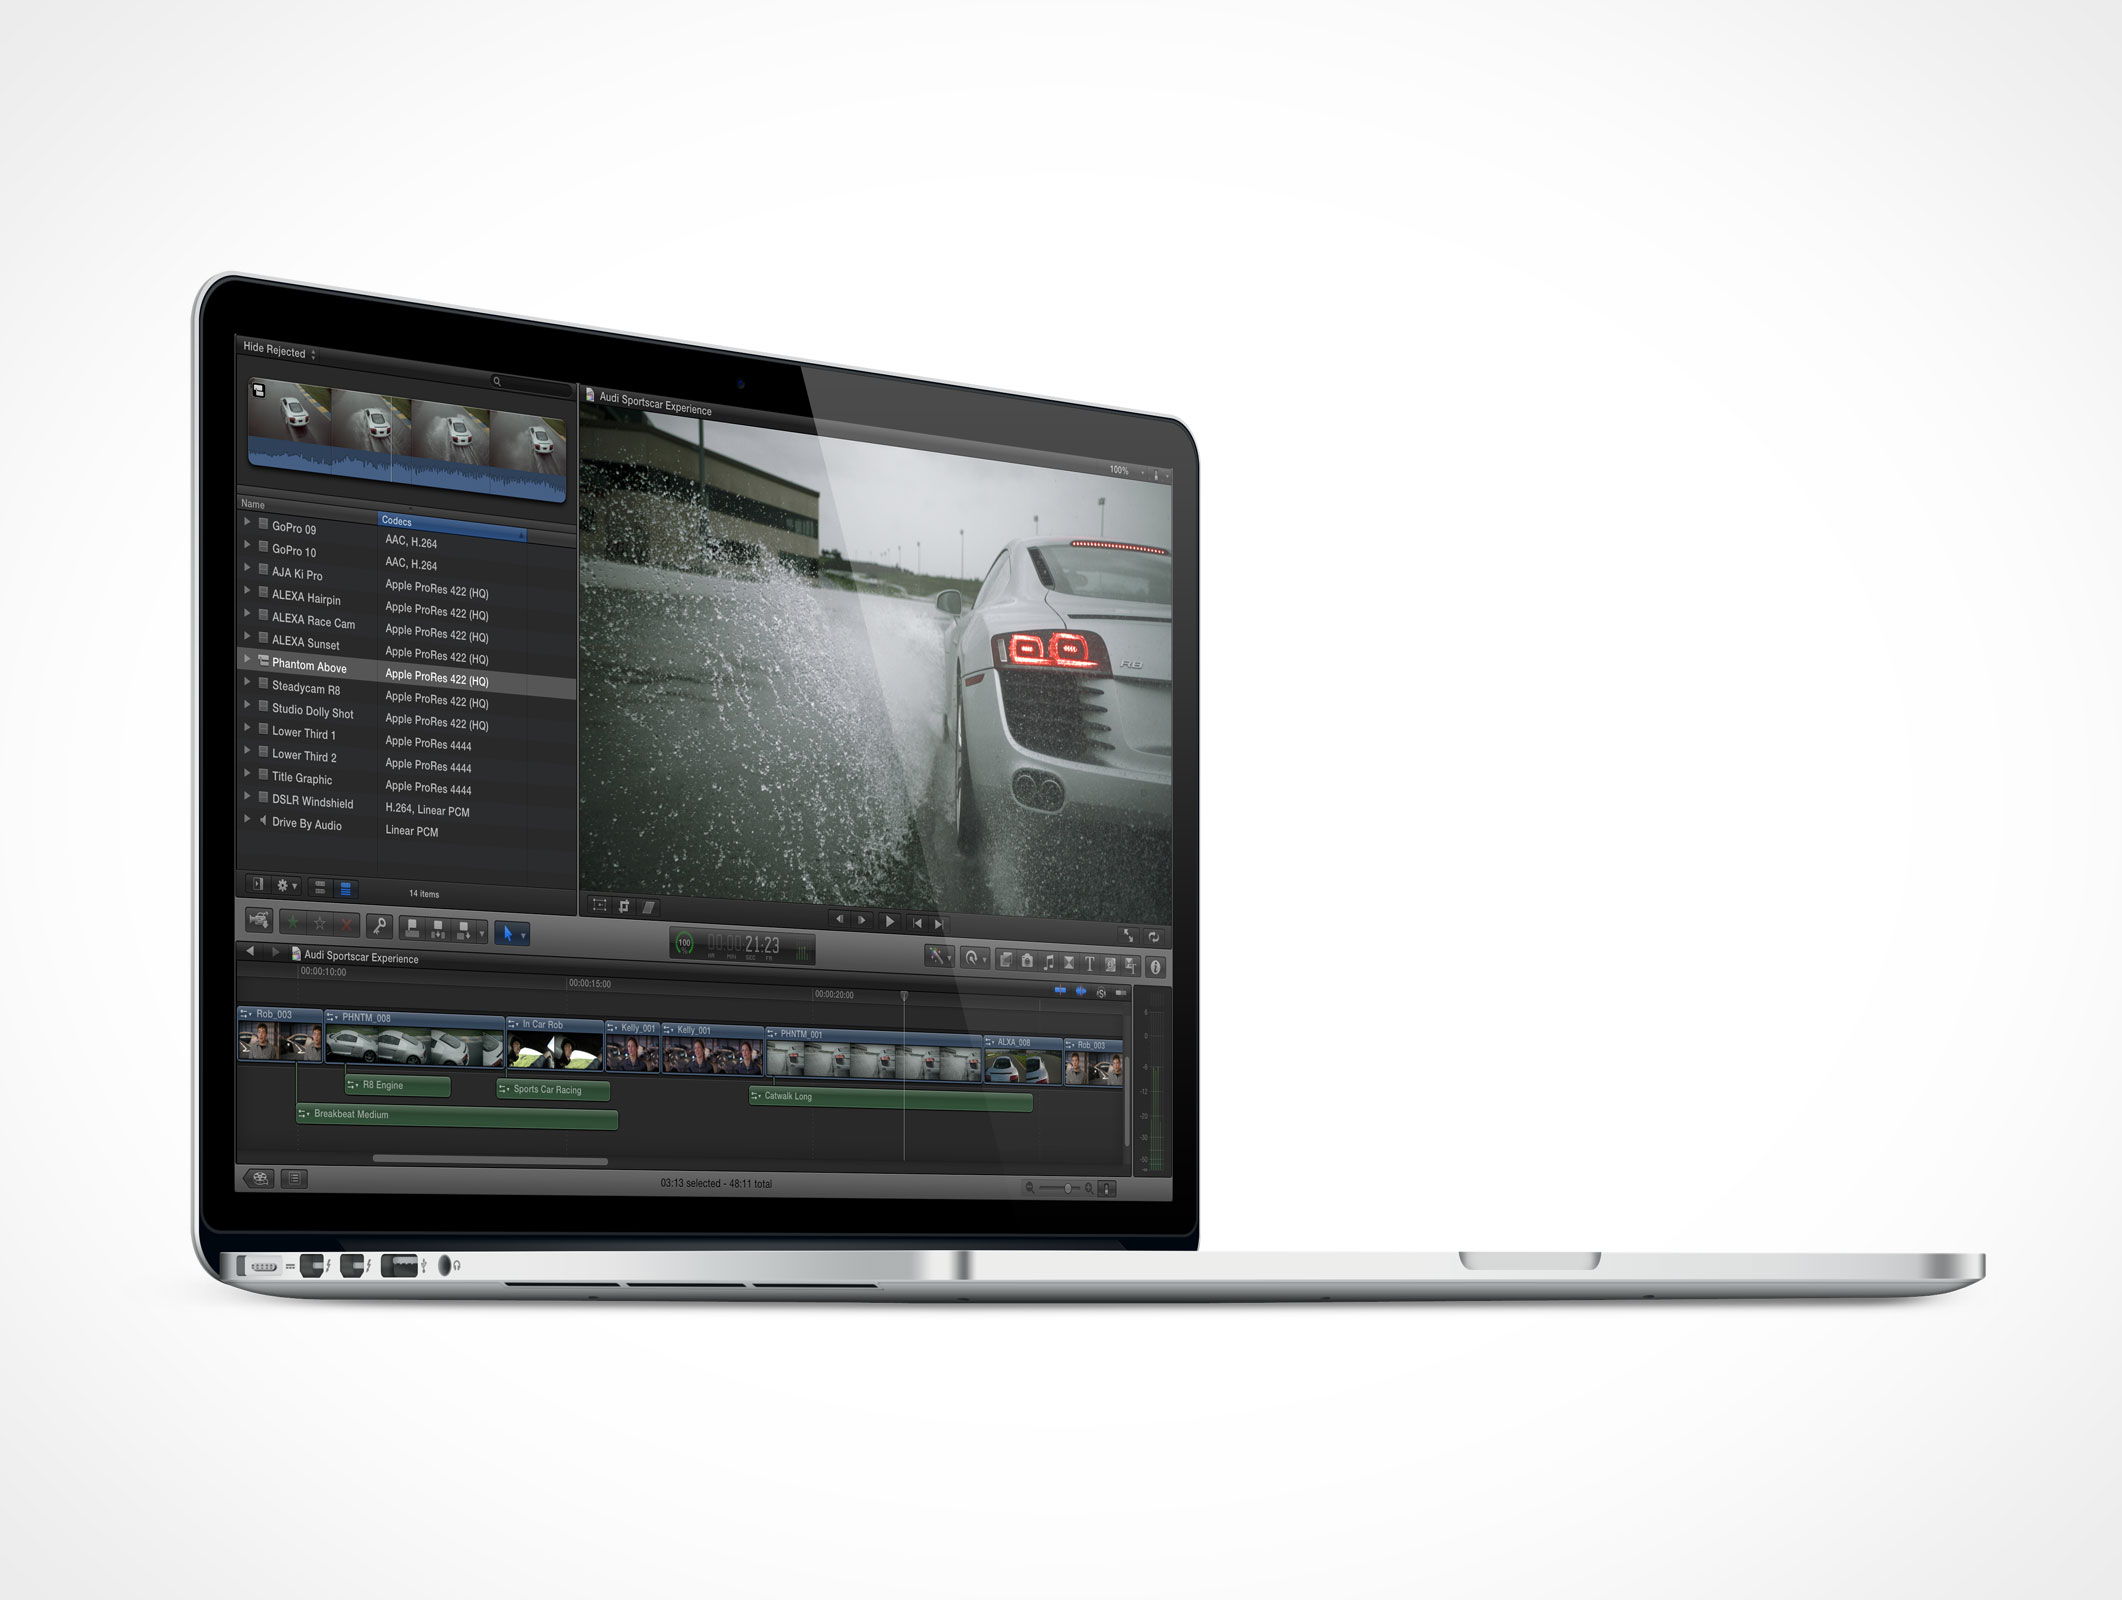 Psd Mockup Freebie Apple Macbook Pro Retina With Thunderbolt Port